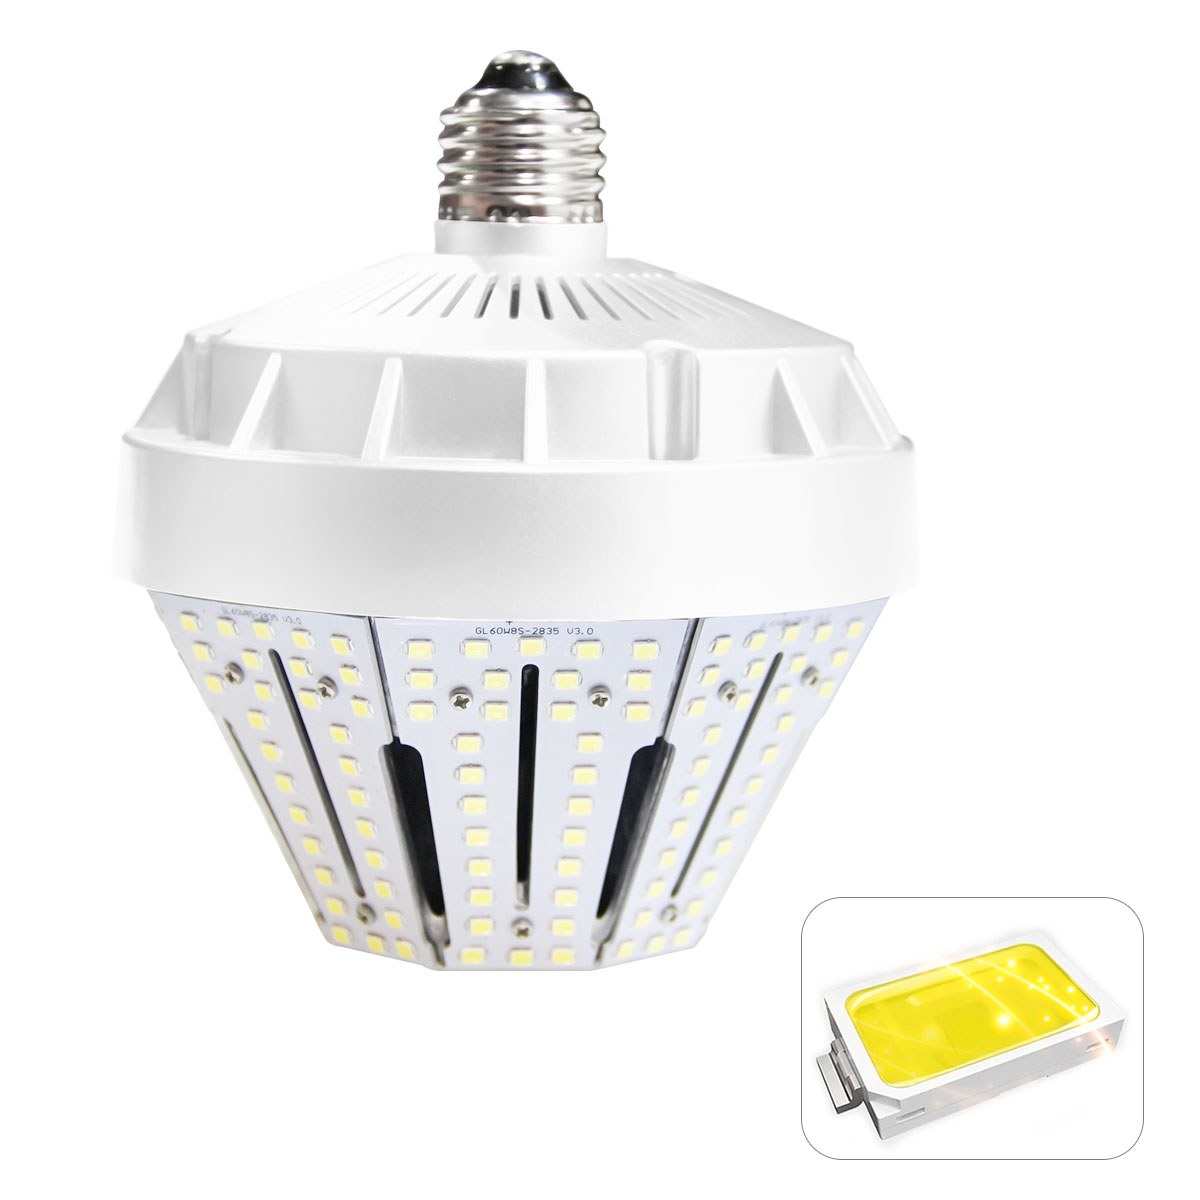 KAWELL 50W LED Garden Light,E39 7500Lm 5000K (Crystal White Glow) Replacement for Fixtures HID/HPS for Indoor Outdoor Large Area Lamp Lighting Factory Warehouse High Bay Barn Porch Backyard Garden